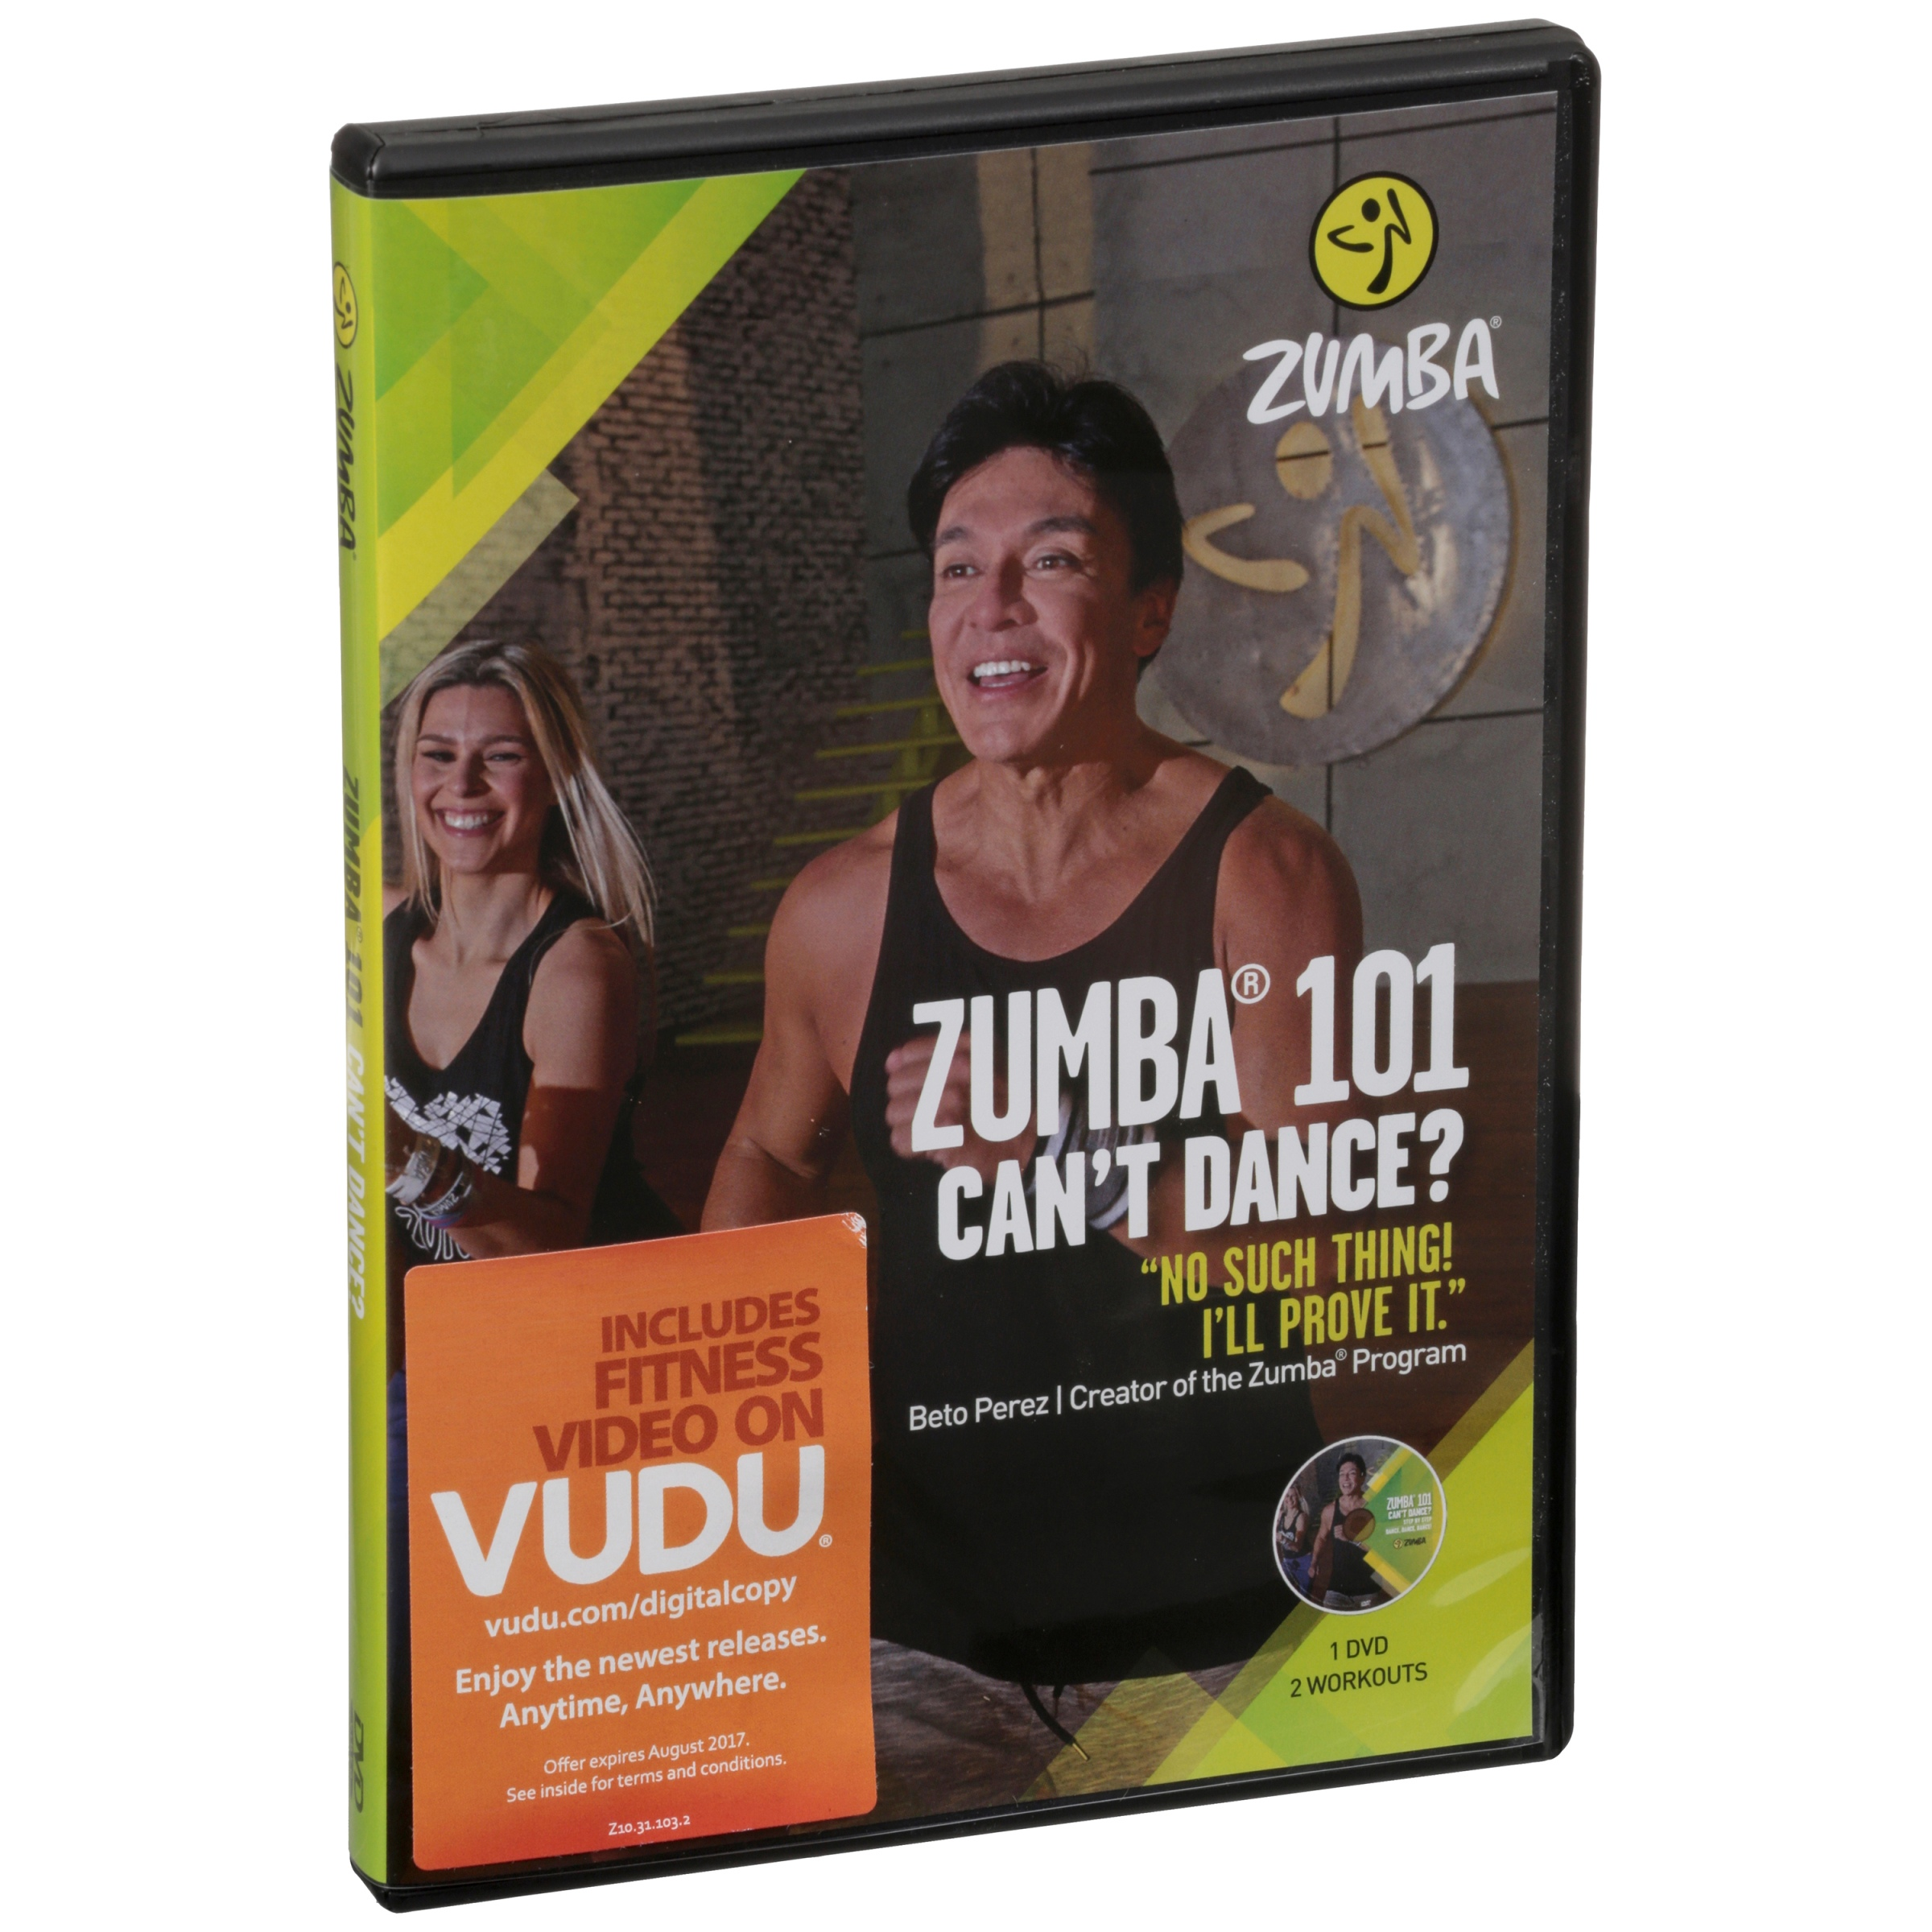 Zumba 101 Can't Dance? Fitness DVD by Zumba Fitness, Llc